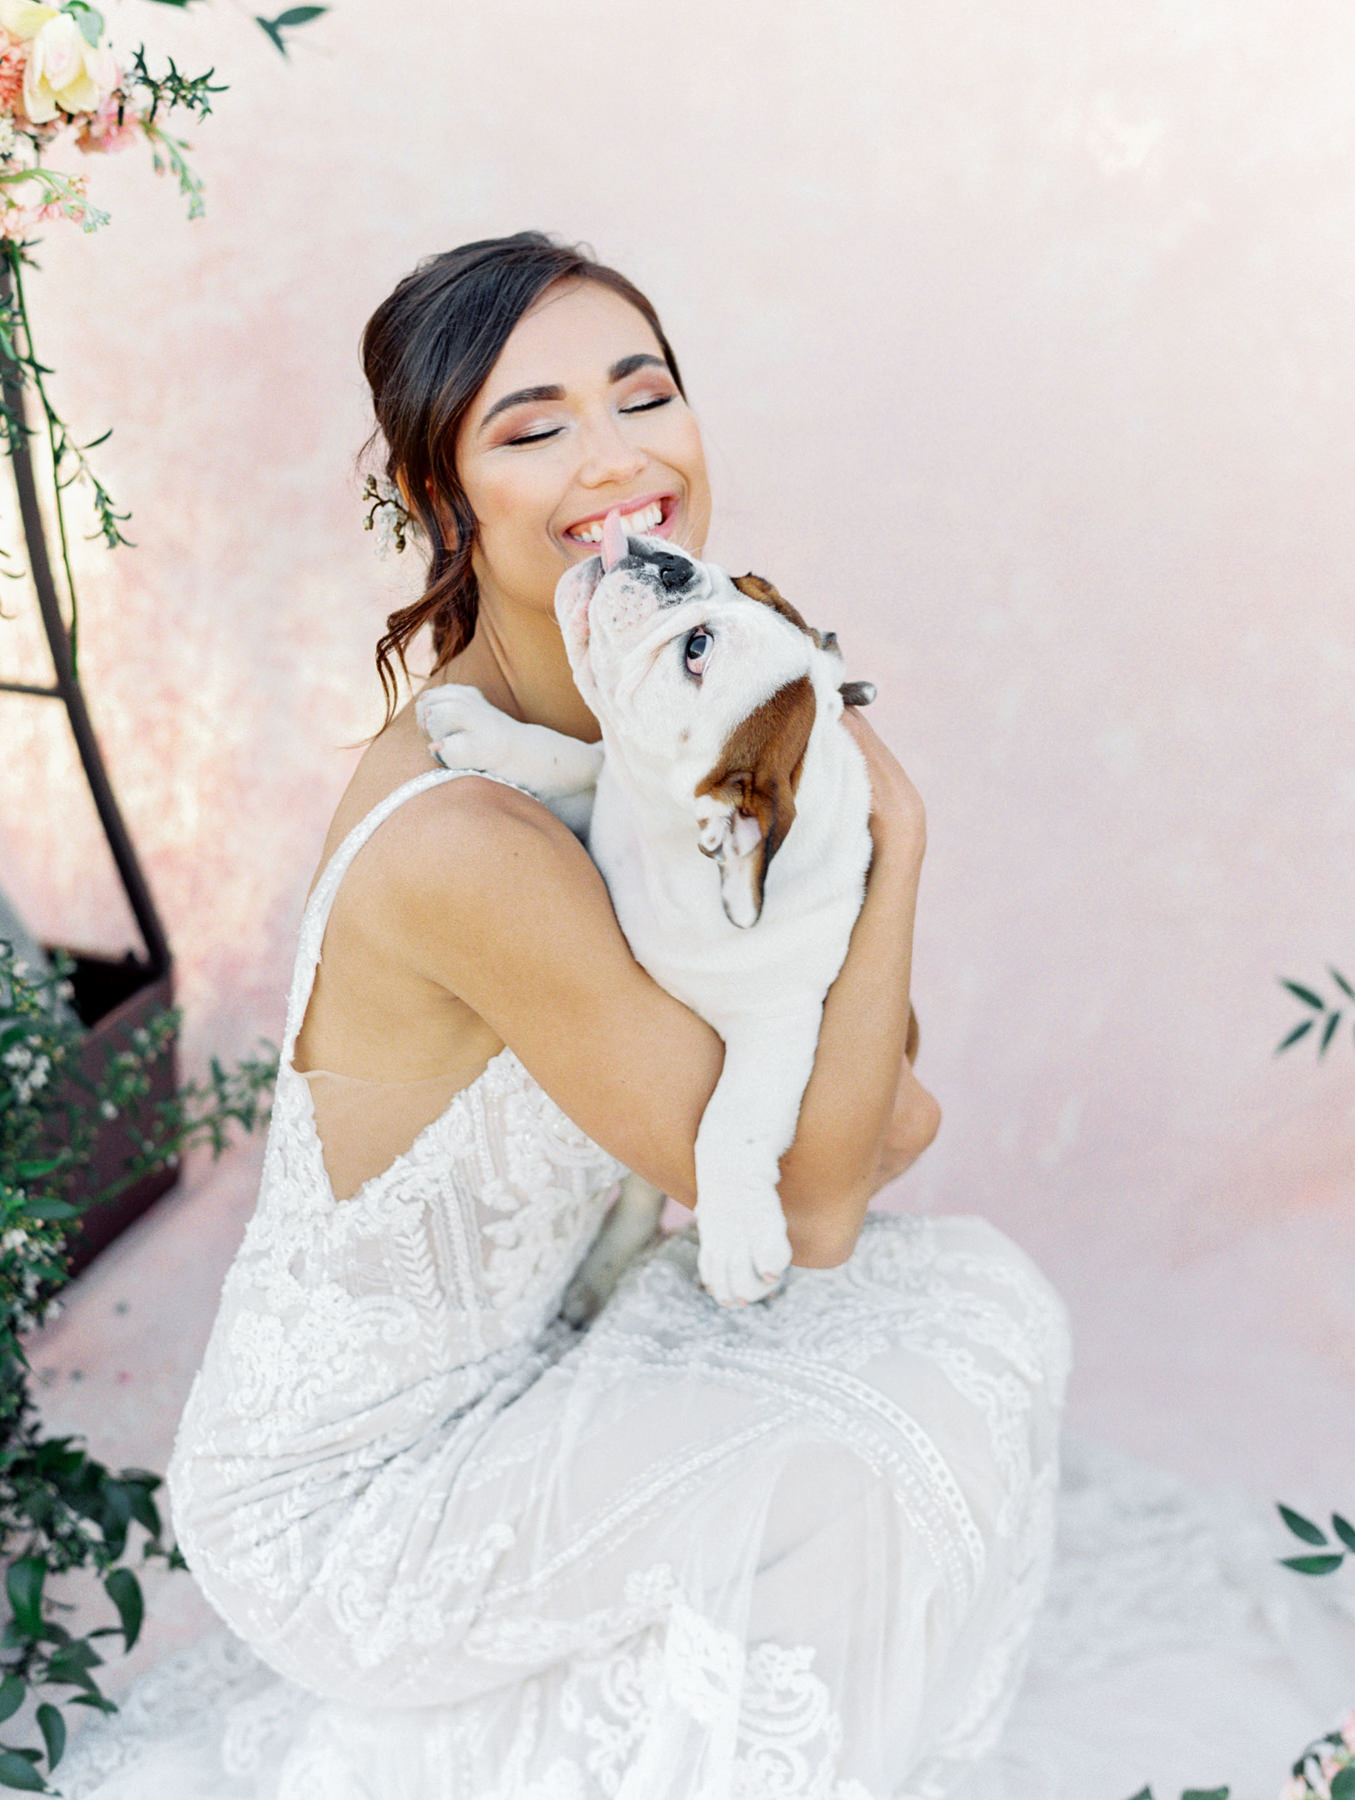 Bride being kissed by a French bulldog. Martina Liana 1066 beaded lace gown from The White Flower. Cavin Elizabeth Photography - film photographer.